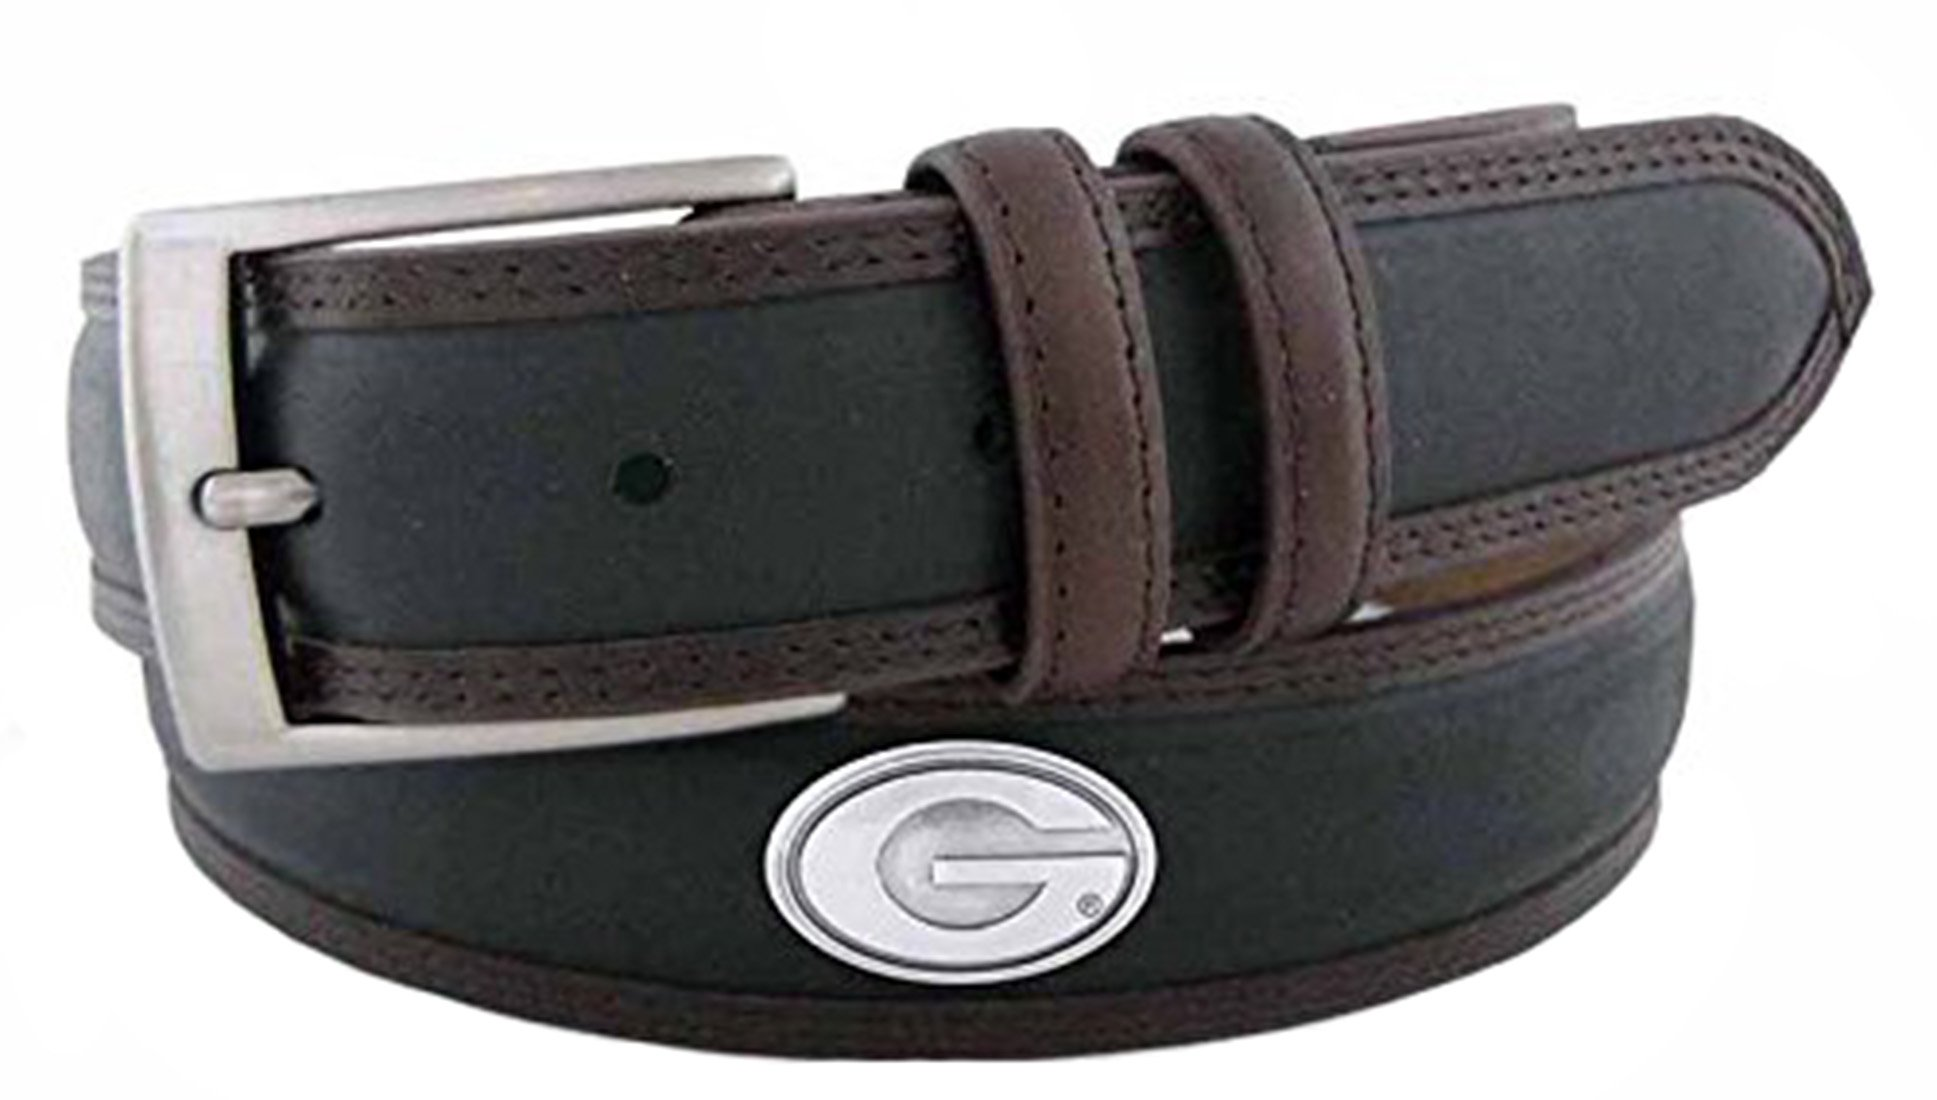 ZeppelinProducts UGA-BBLPS-BLK-34 Georgia Concho Two Tone Leather Belt, 34 Waist